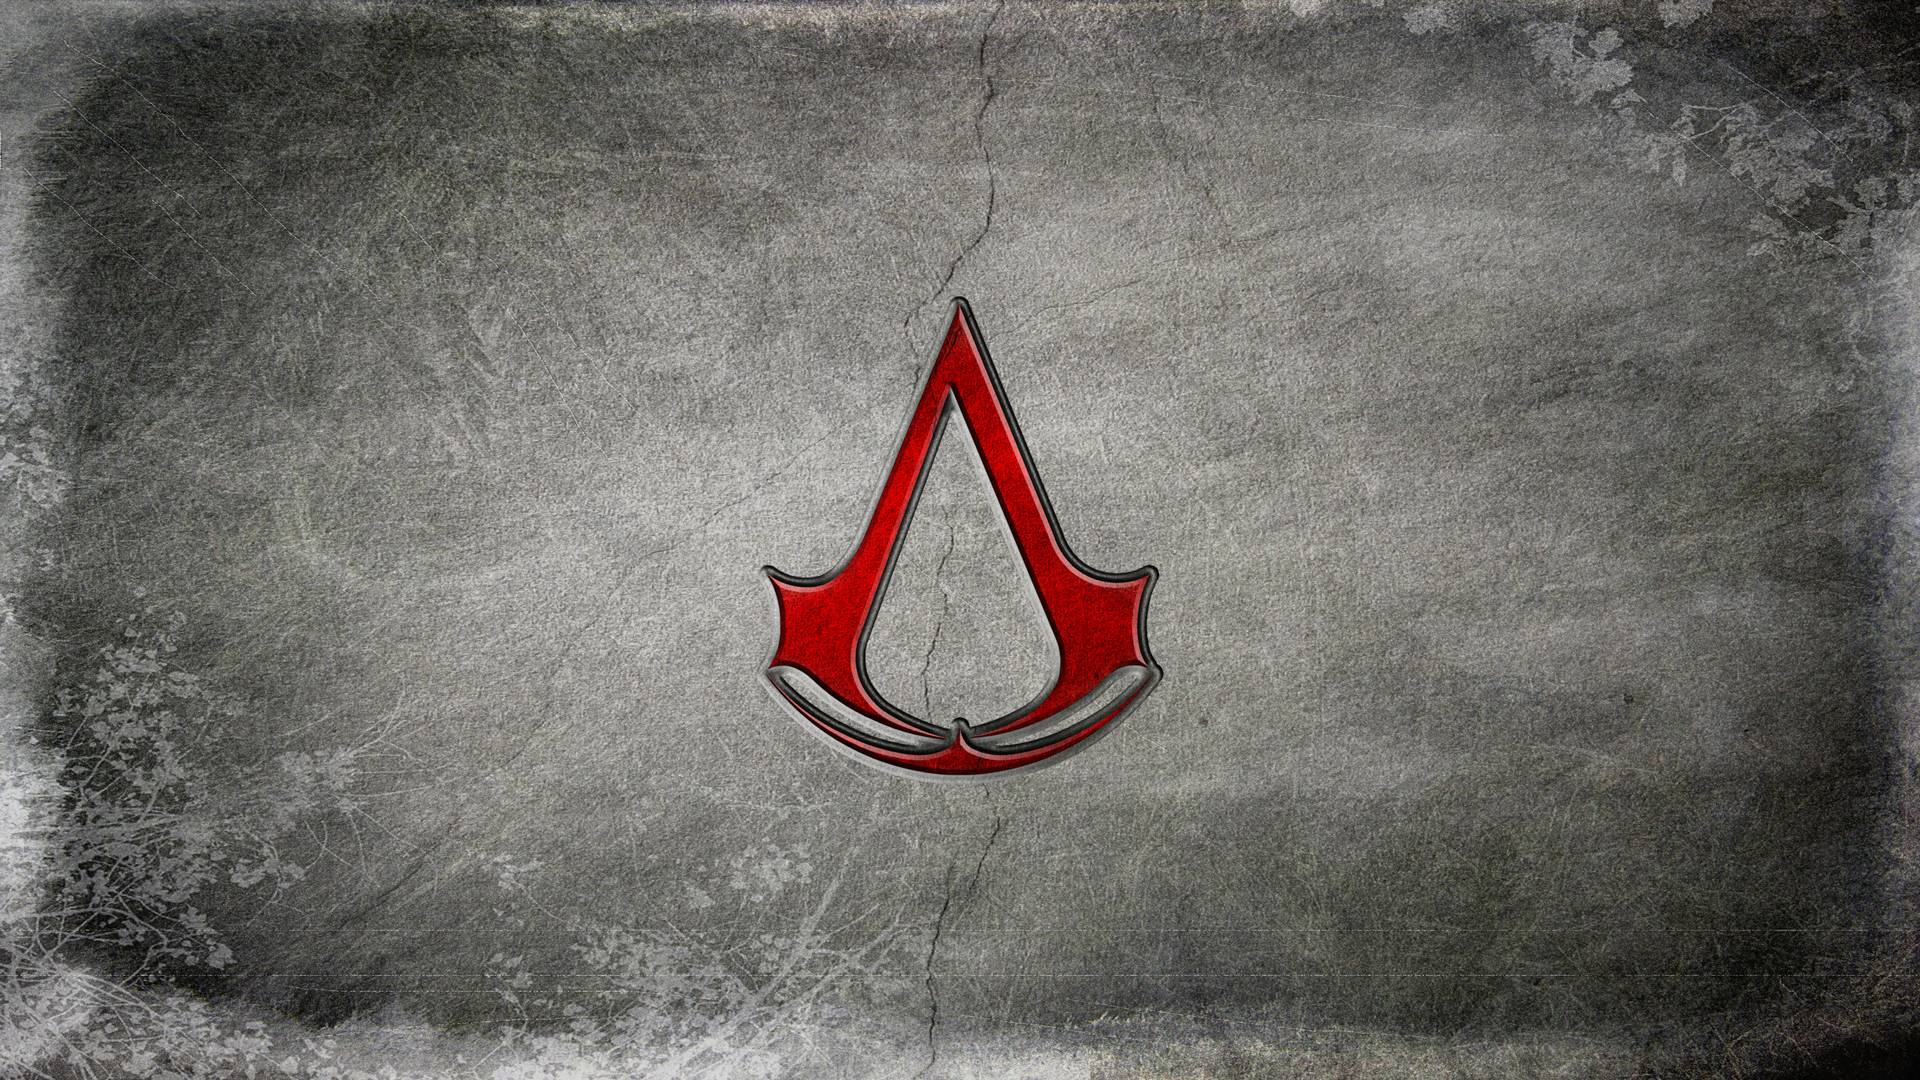 Assassins Creed Symbol Wallpapers 1920x1080